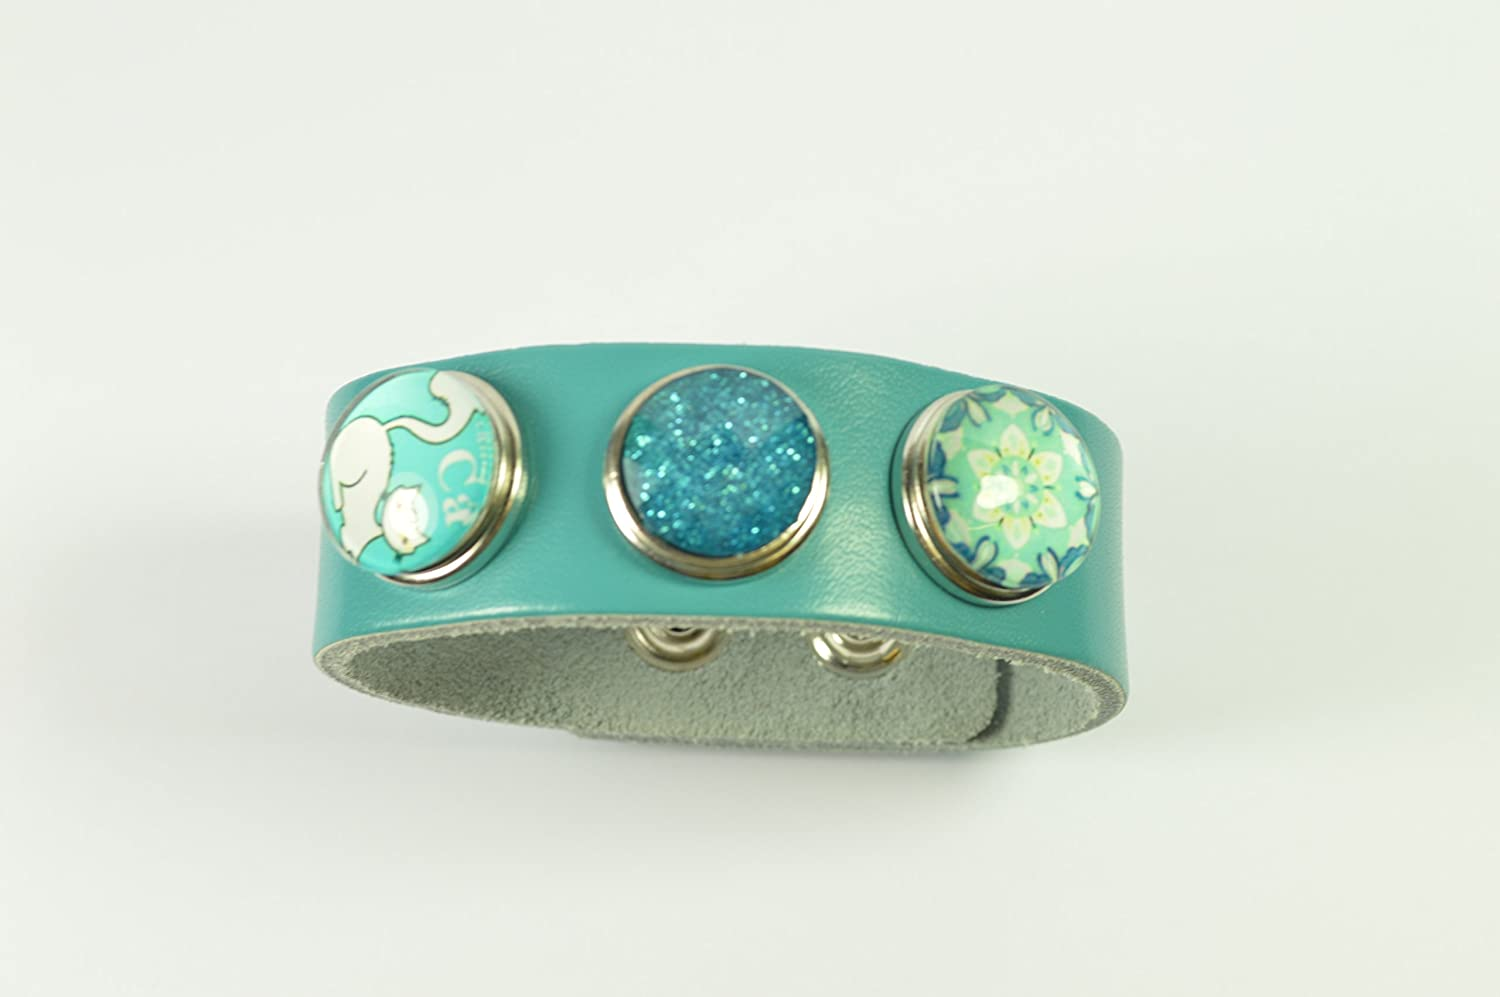 Noosa Style Turquoise Blue Leather Bracelet with 3 Beautiful Snap Buttons & Gift Box ~ No 1 Libby's Market Place